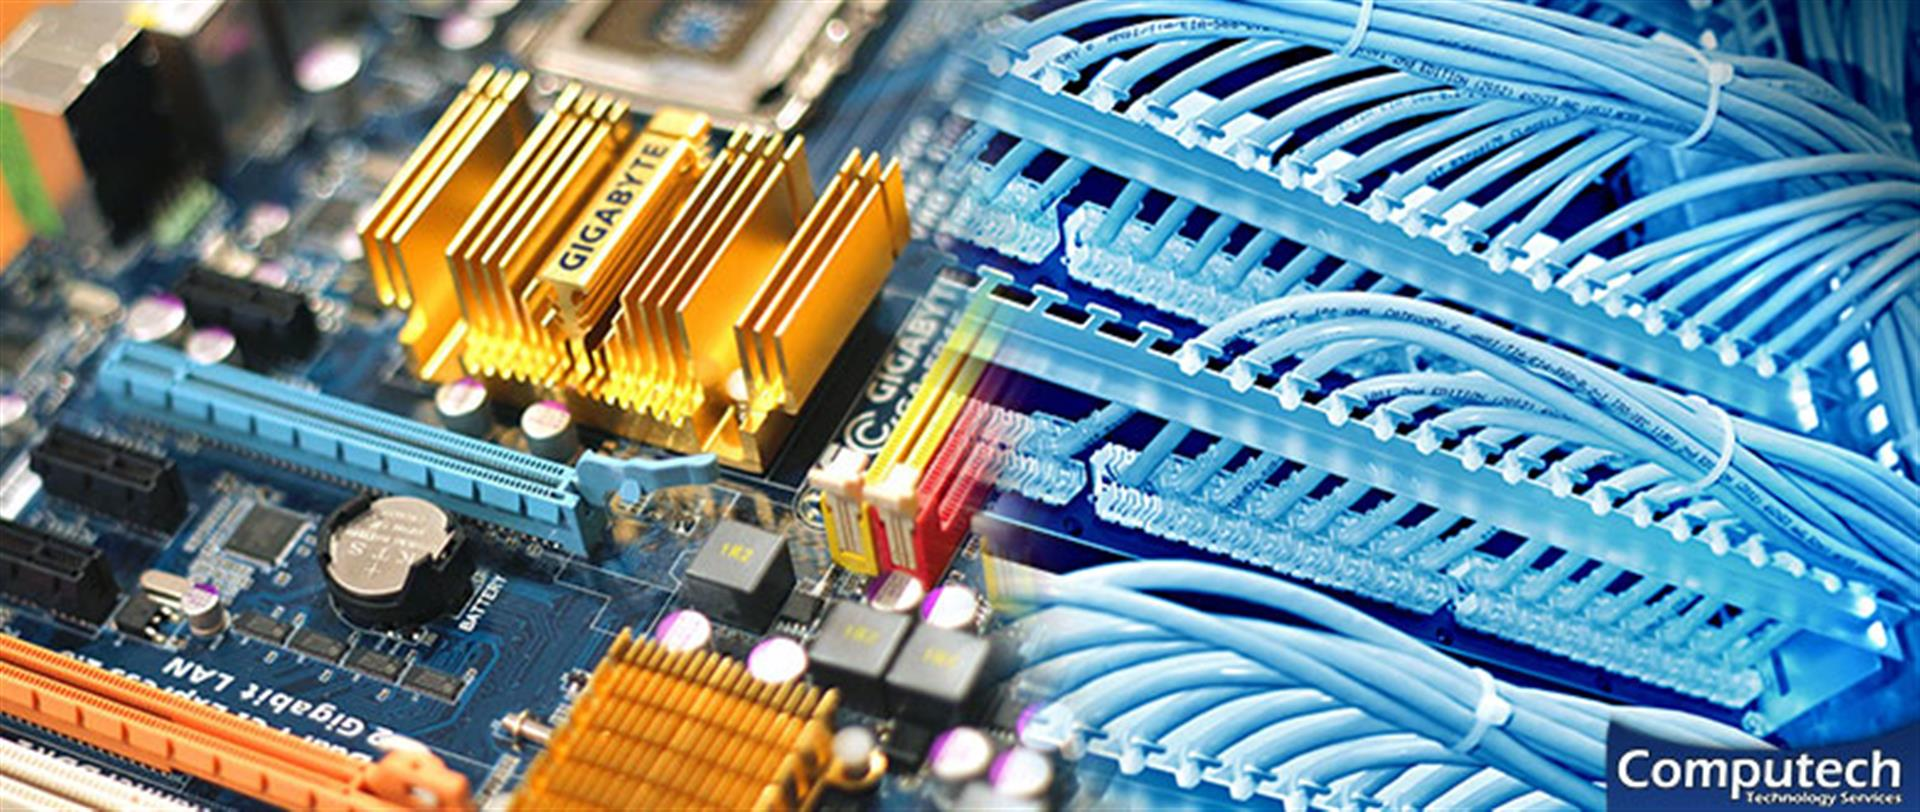 Whitwell Tennessee Onsite PC & Printer Repairs, Networking, Voice & Data Cabling Services